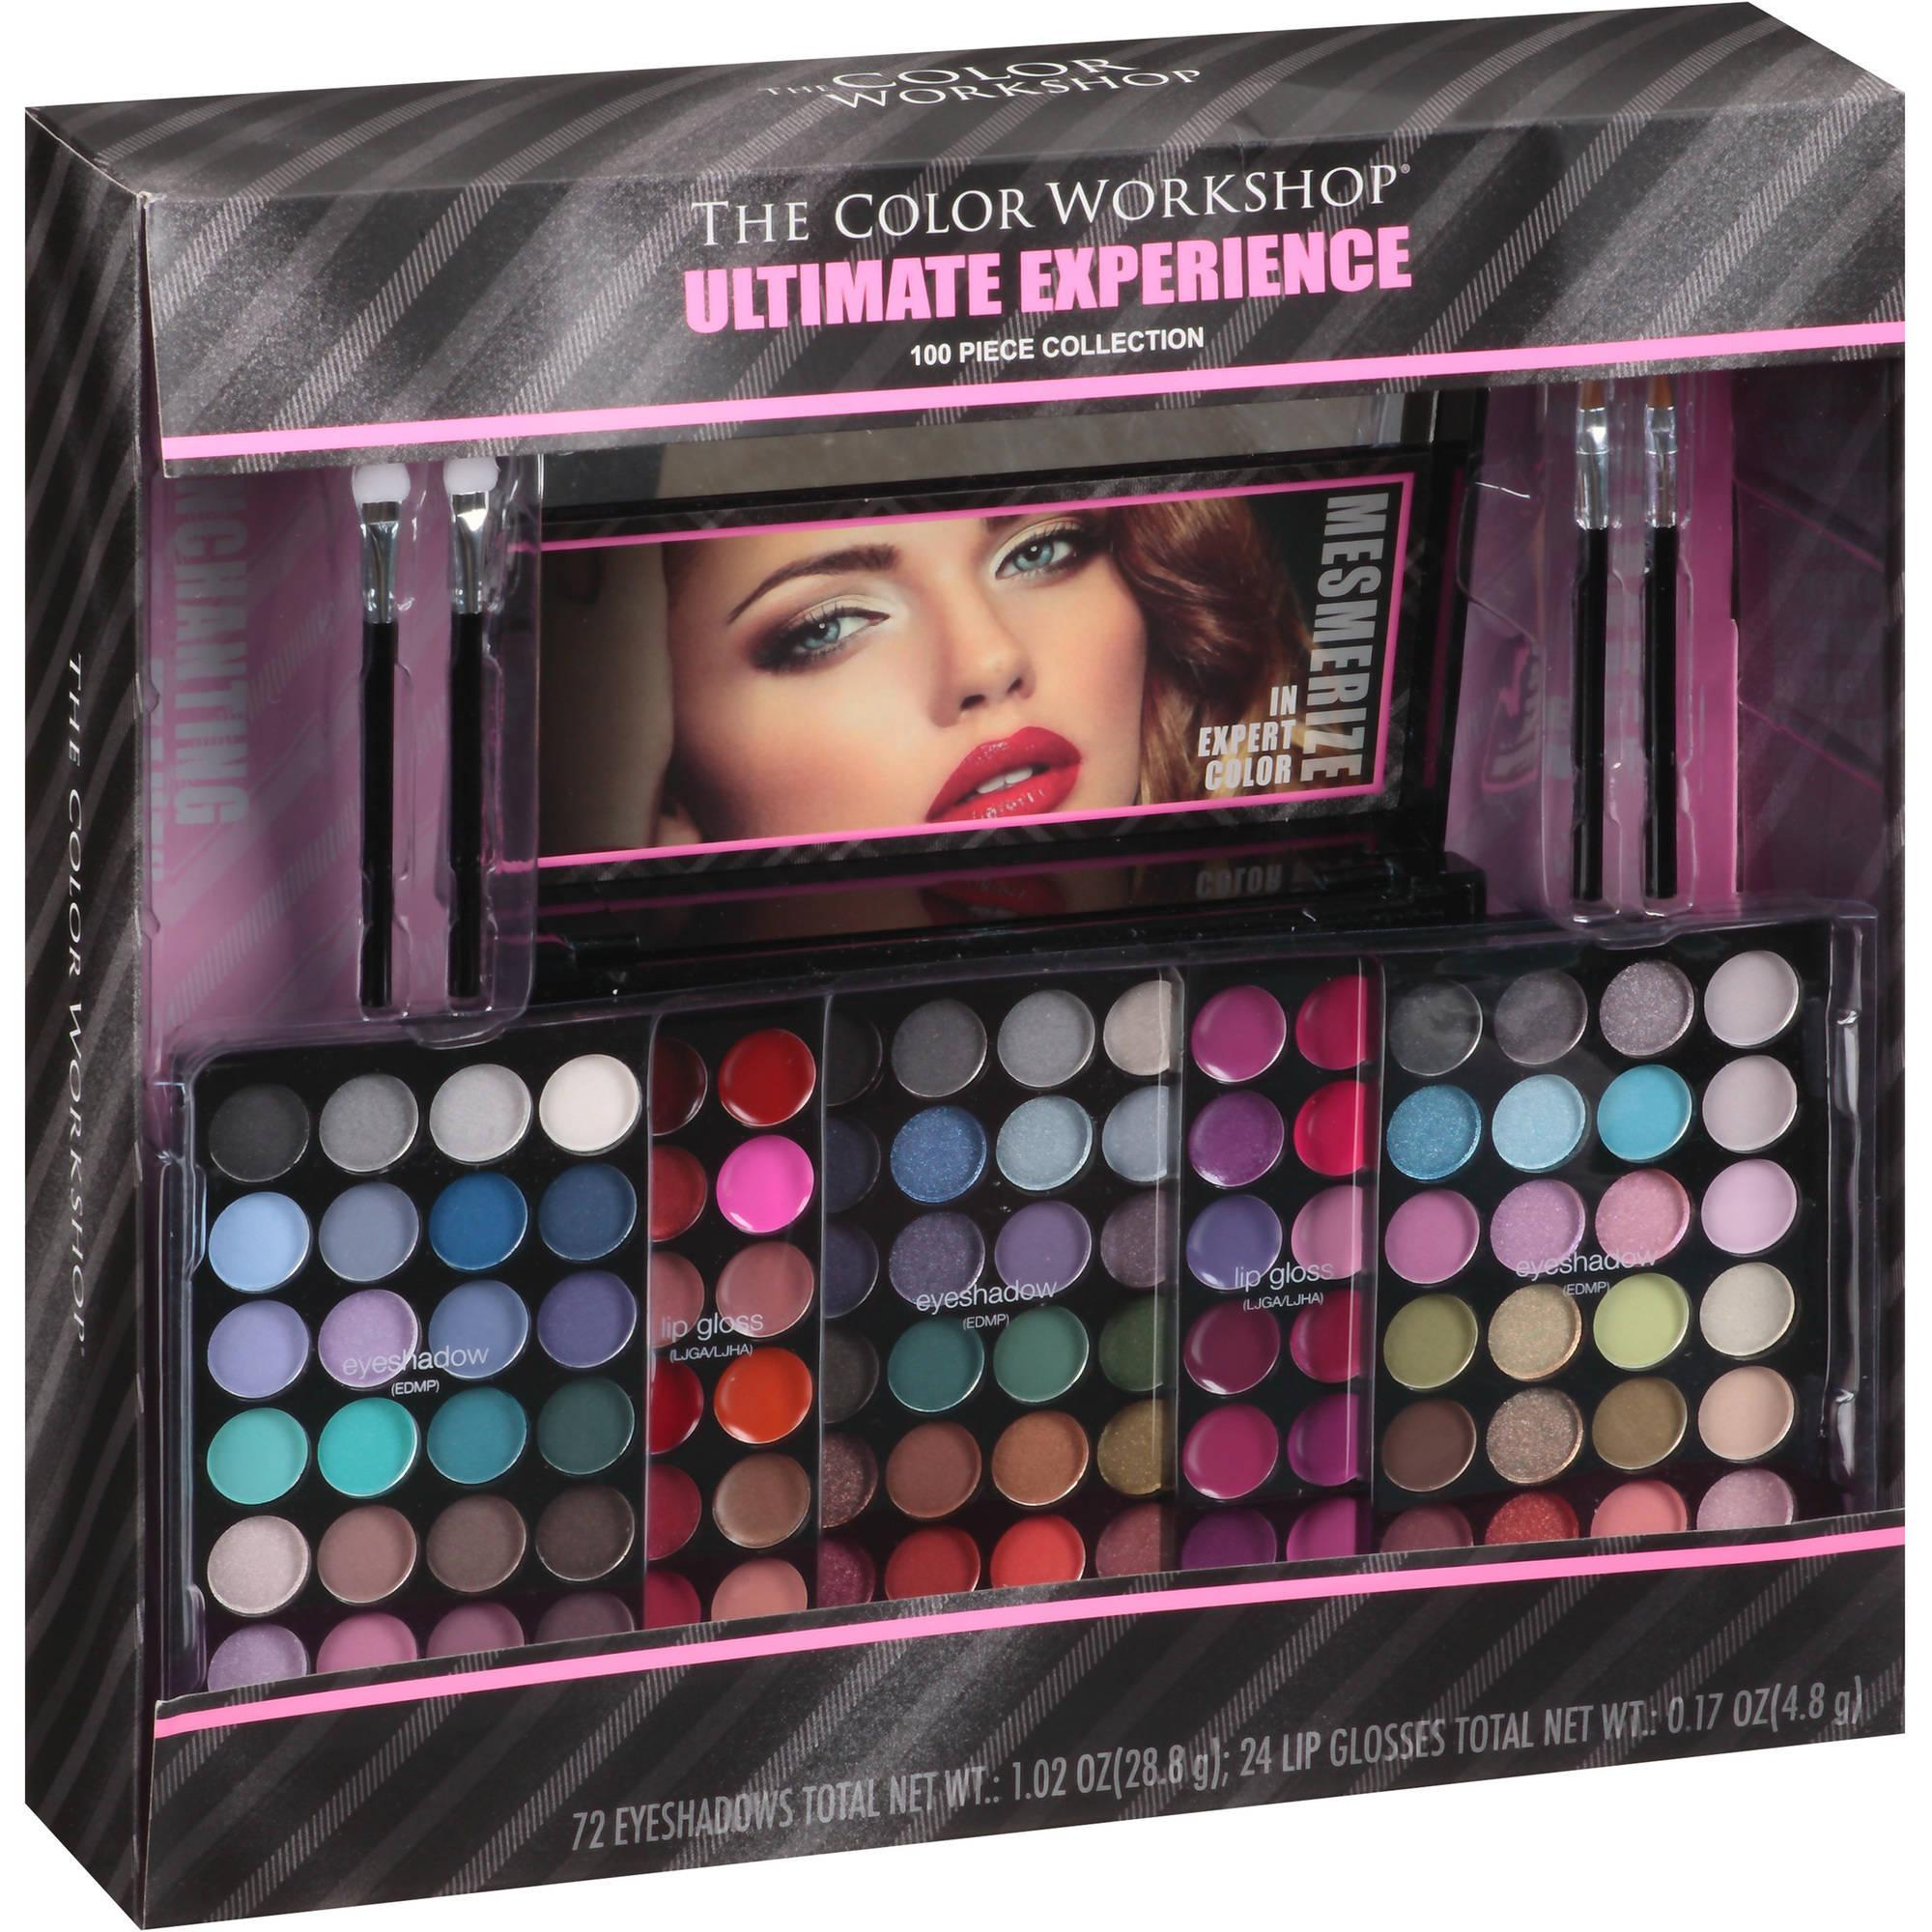 The Color Workshop Ultimate Experience Gift Set Just $7.38! Down From $14.88!